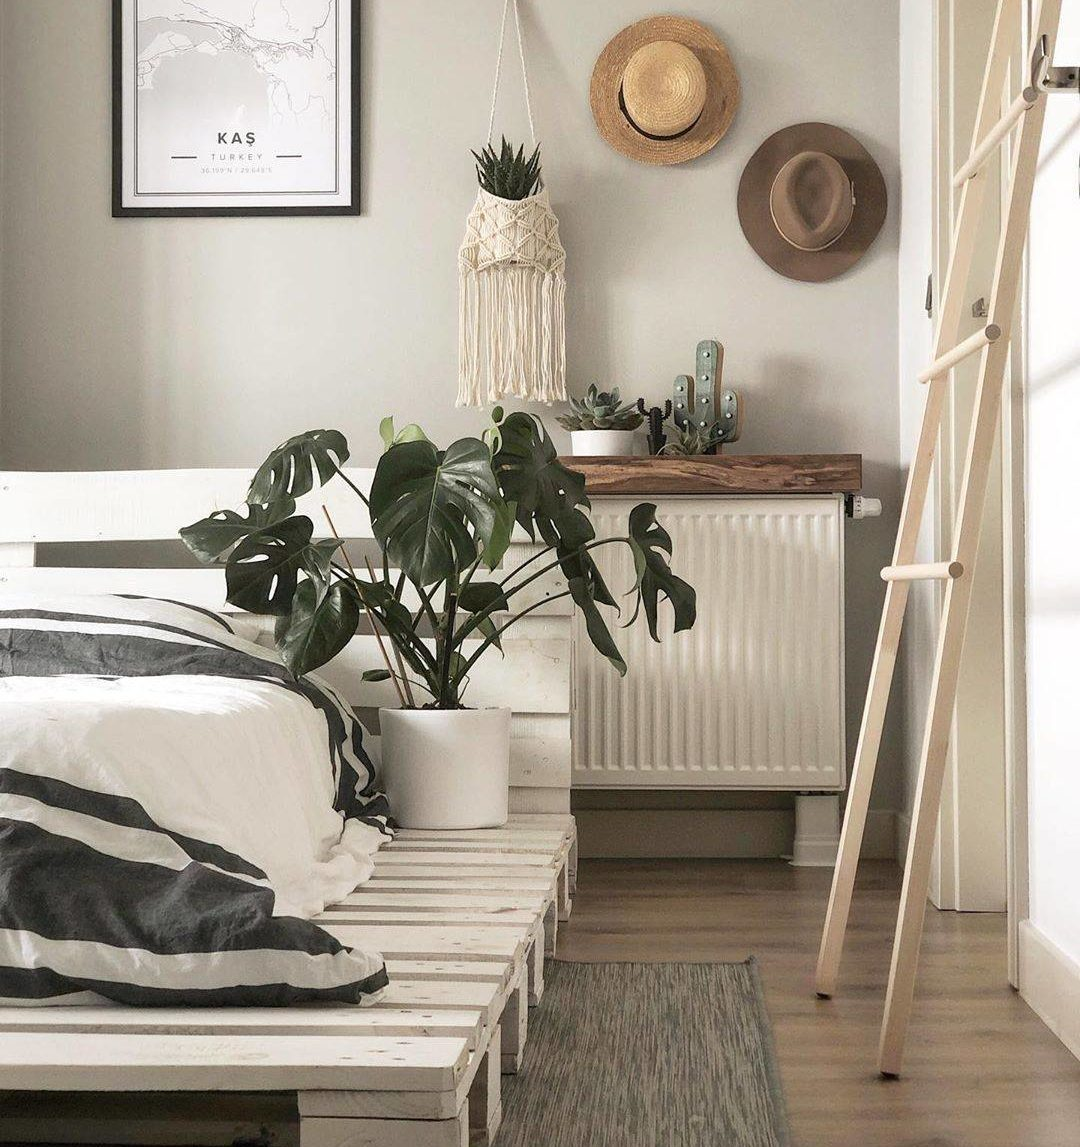 Modern Chic White Wash Pallet Bed Frame Rustic Country Bedroom Macrame Plant Hanger